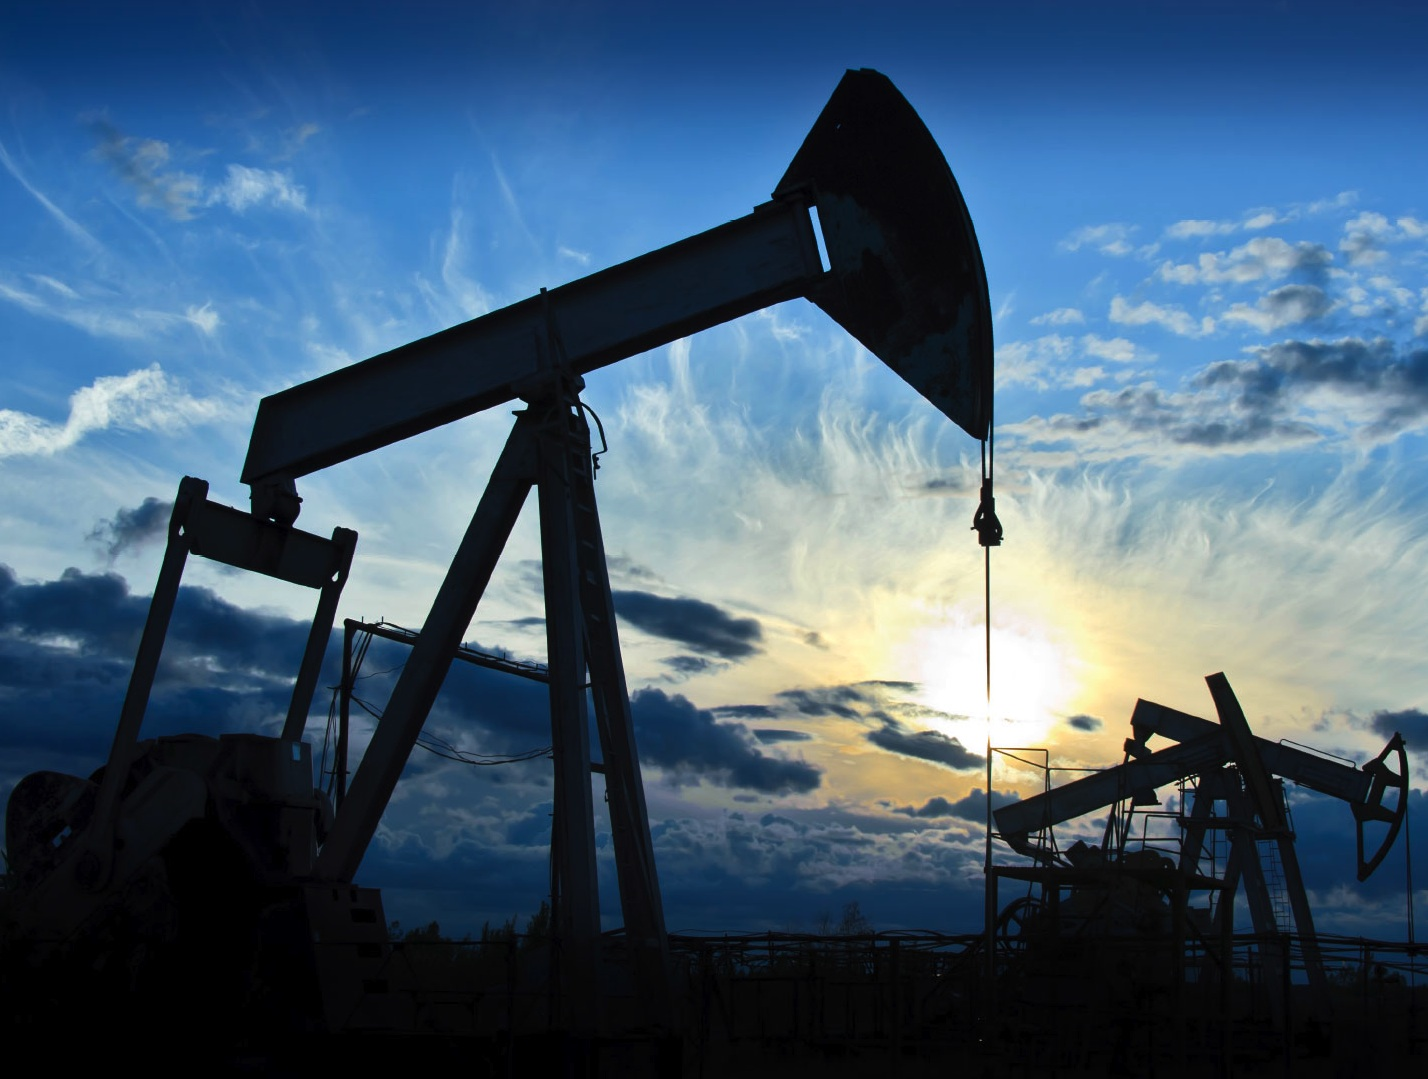 Capturing Value From M&A In Oil And Gas: Implications For Integration